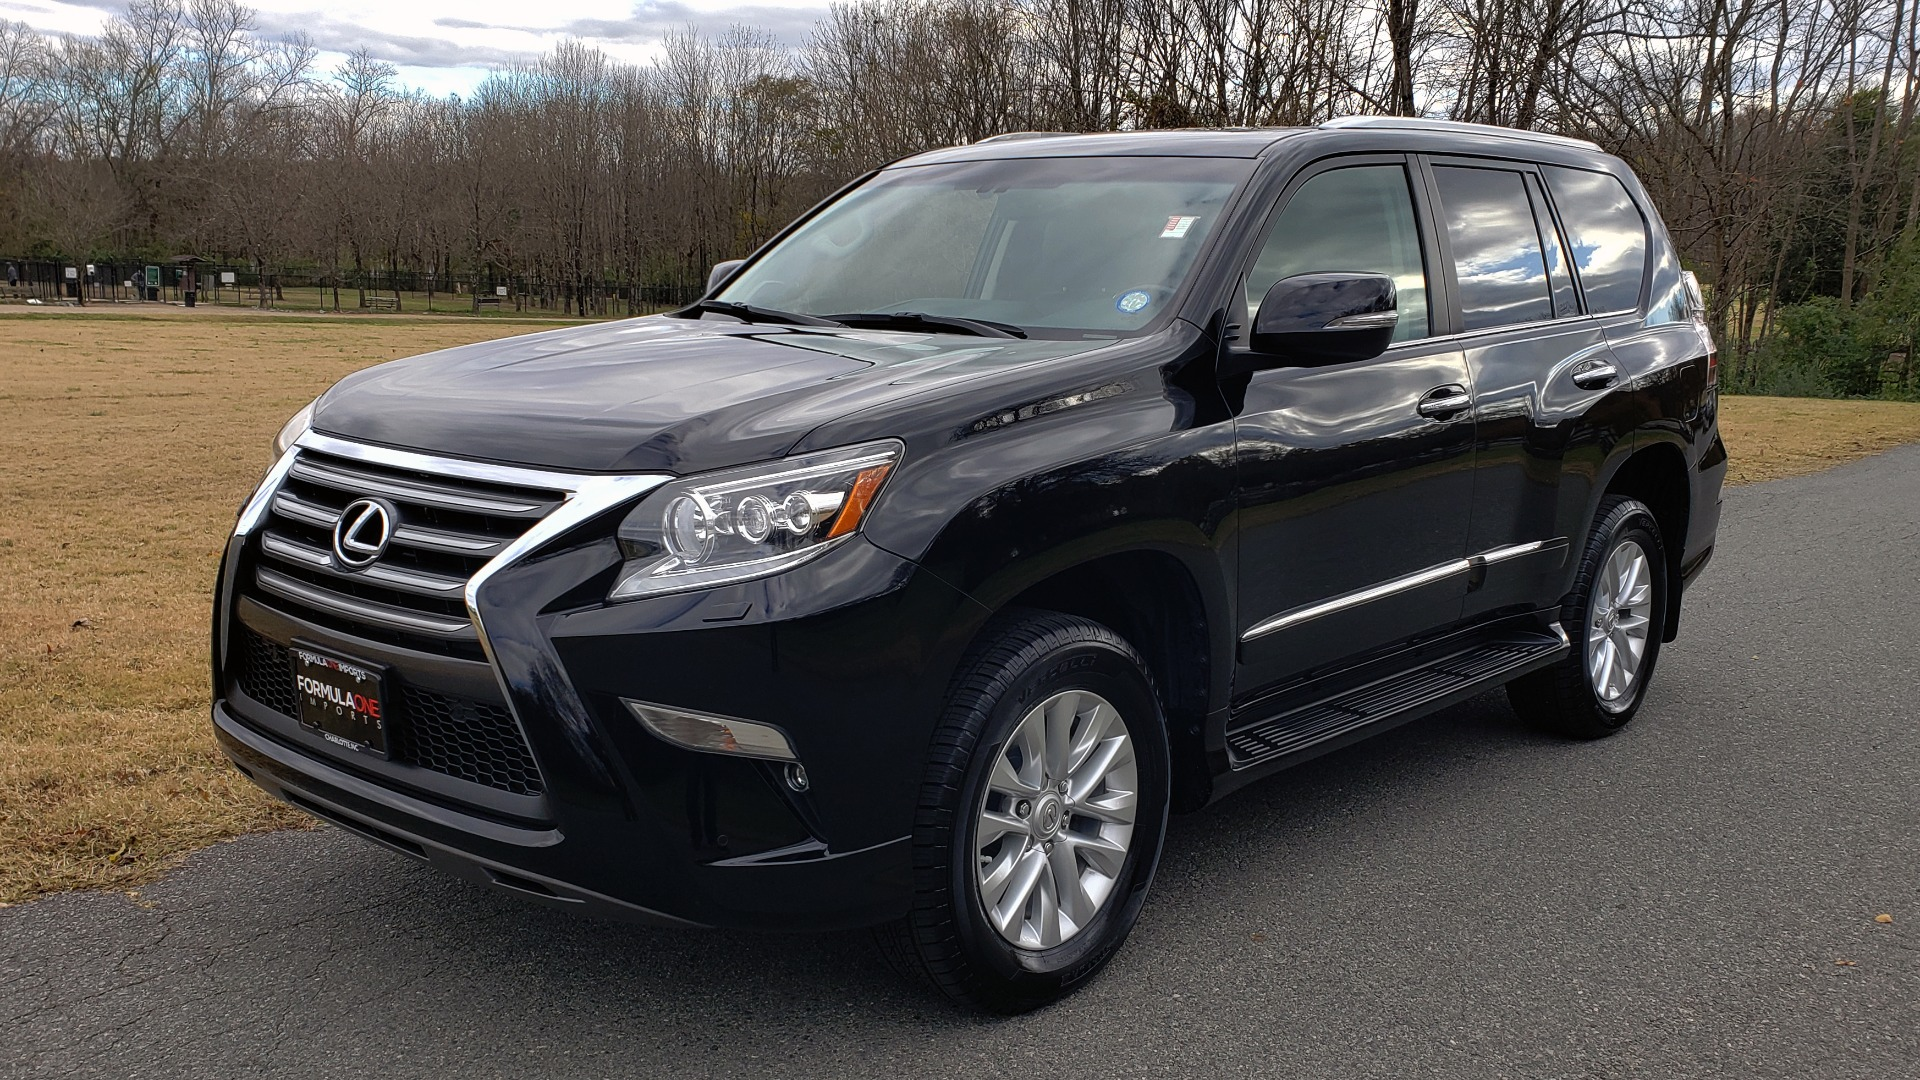 Used 2017 Lexus GX 460 PREMIUM / 4WD / NAV / SUNROOF / 3-ROW / BSM / REARVIEW for sale $34,995 at Formula Imports in Charlotte NC 28227 1